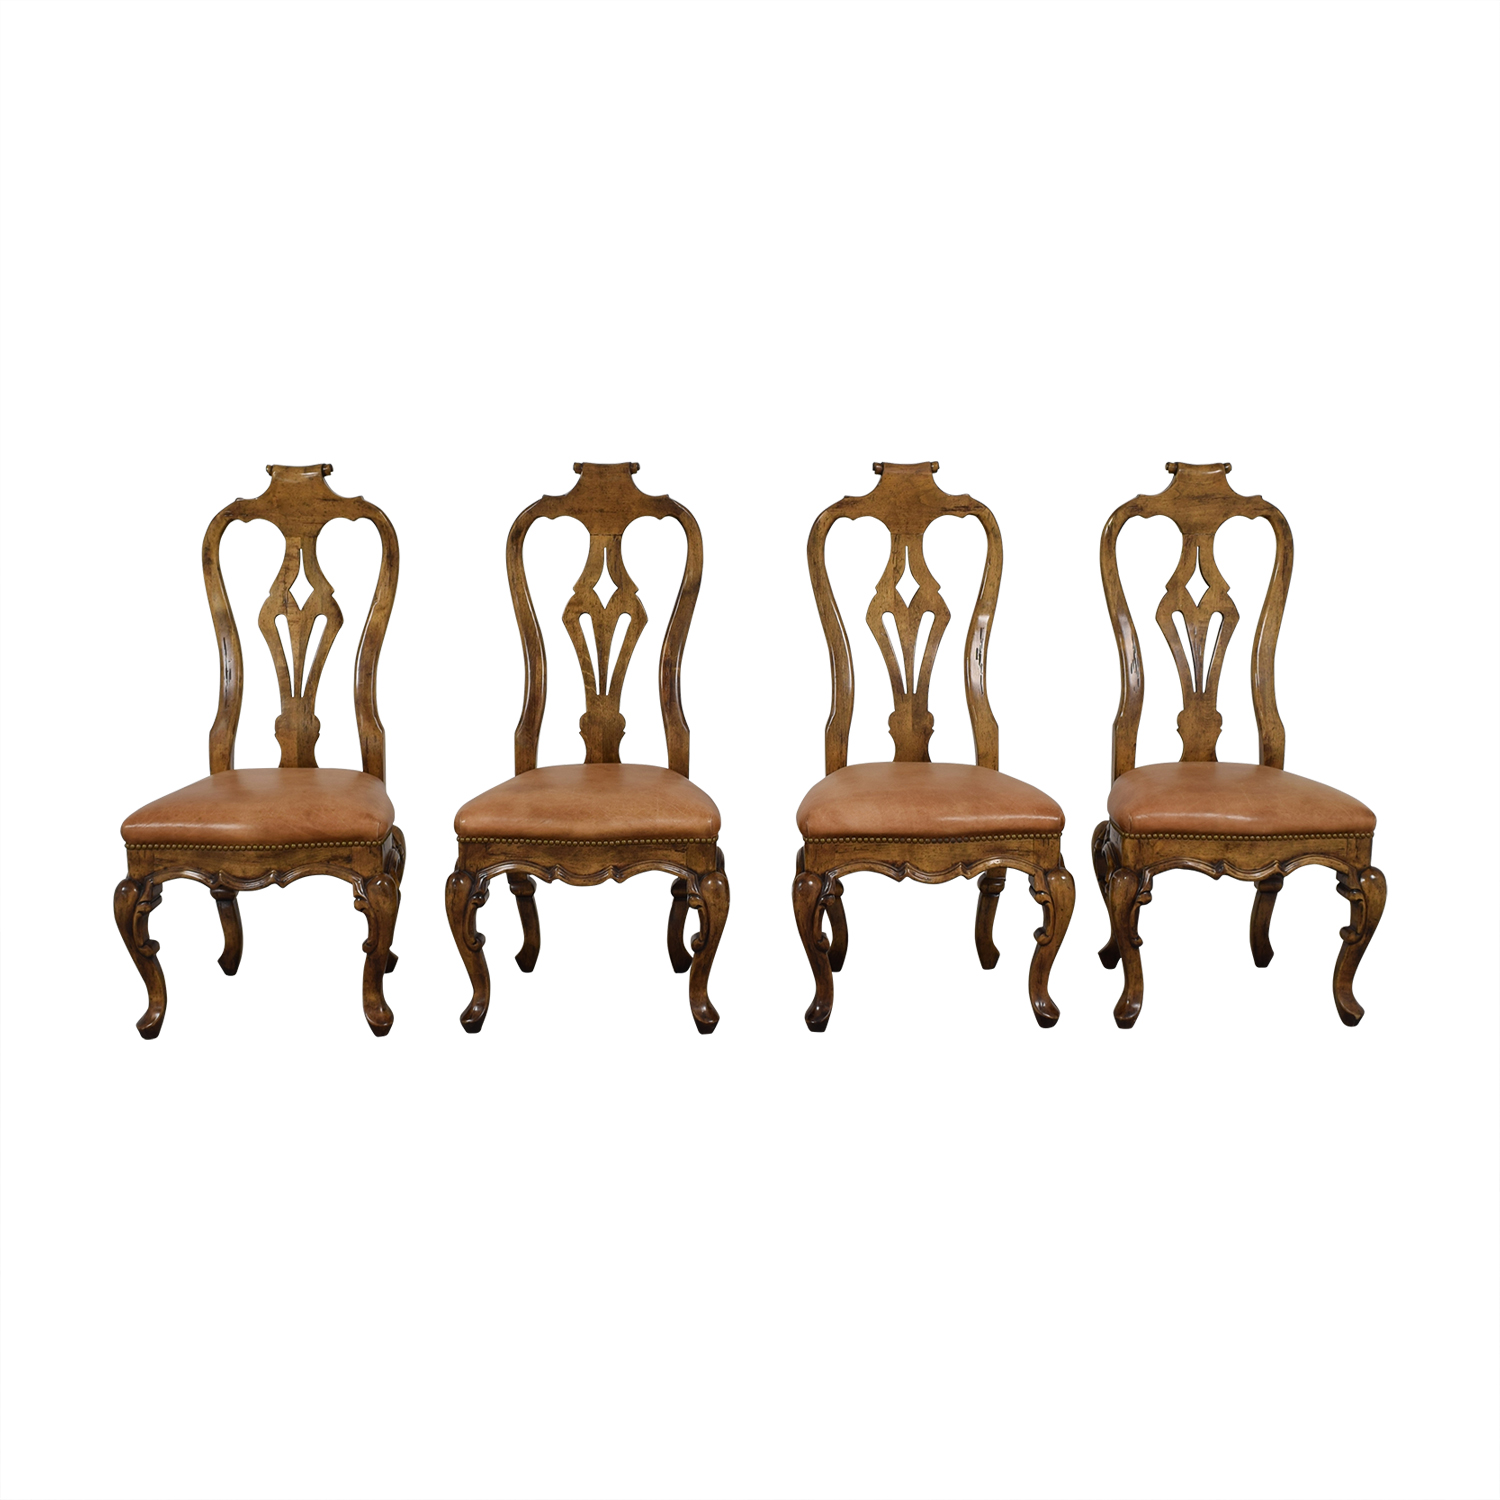 shop Bausman and Co Bausman and Co Portuguese Queen Anne Tan Dining Chairs online